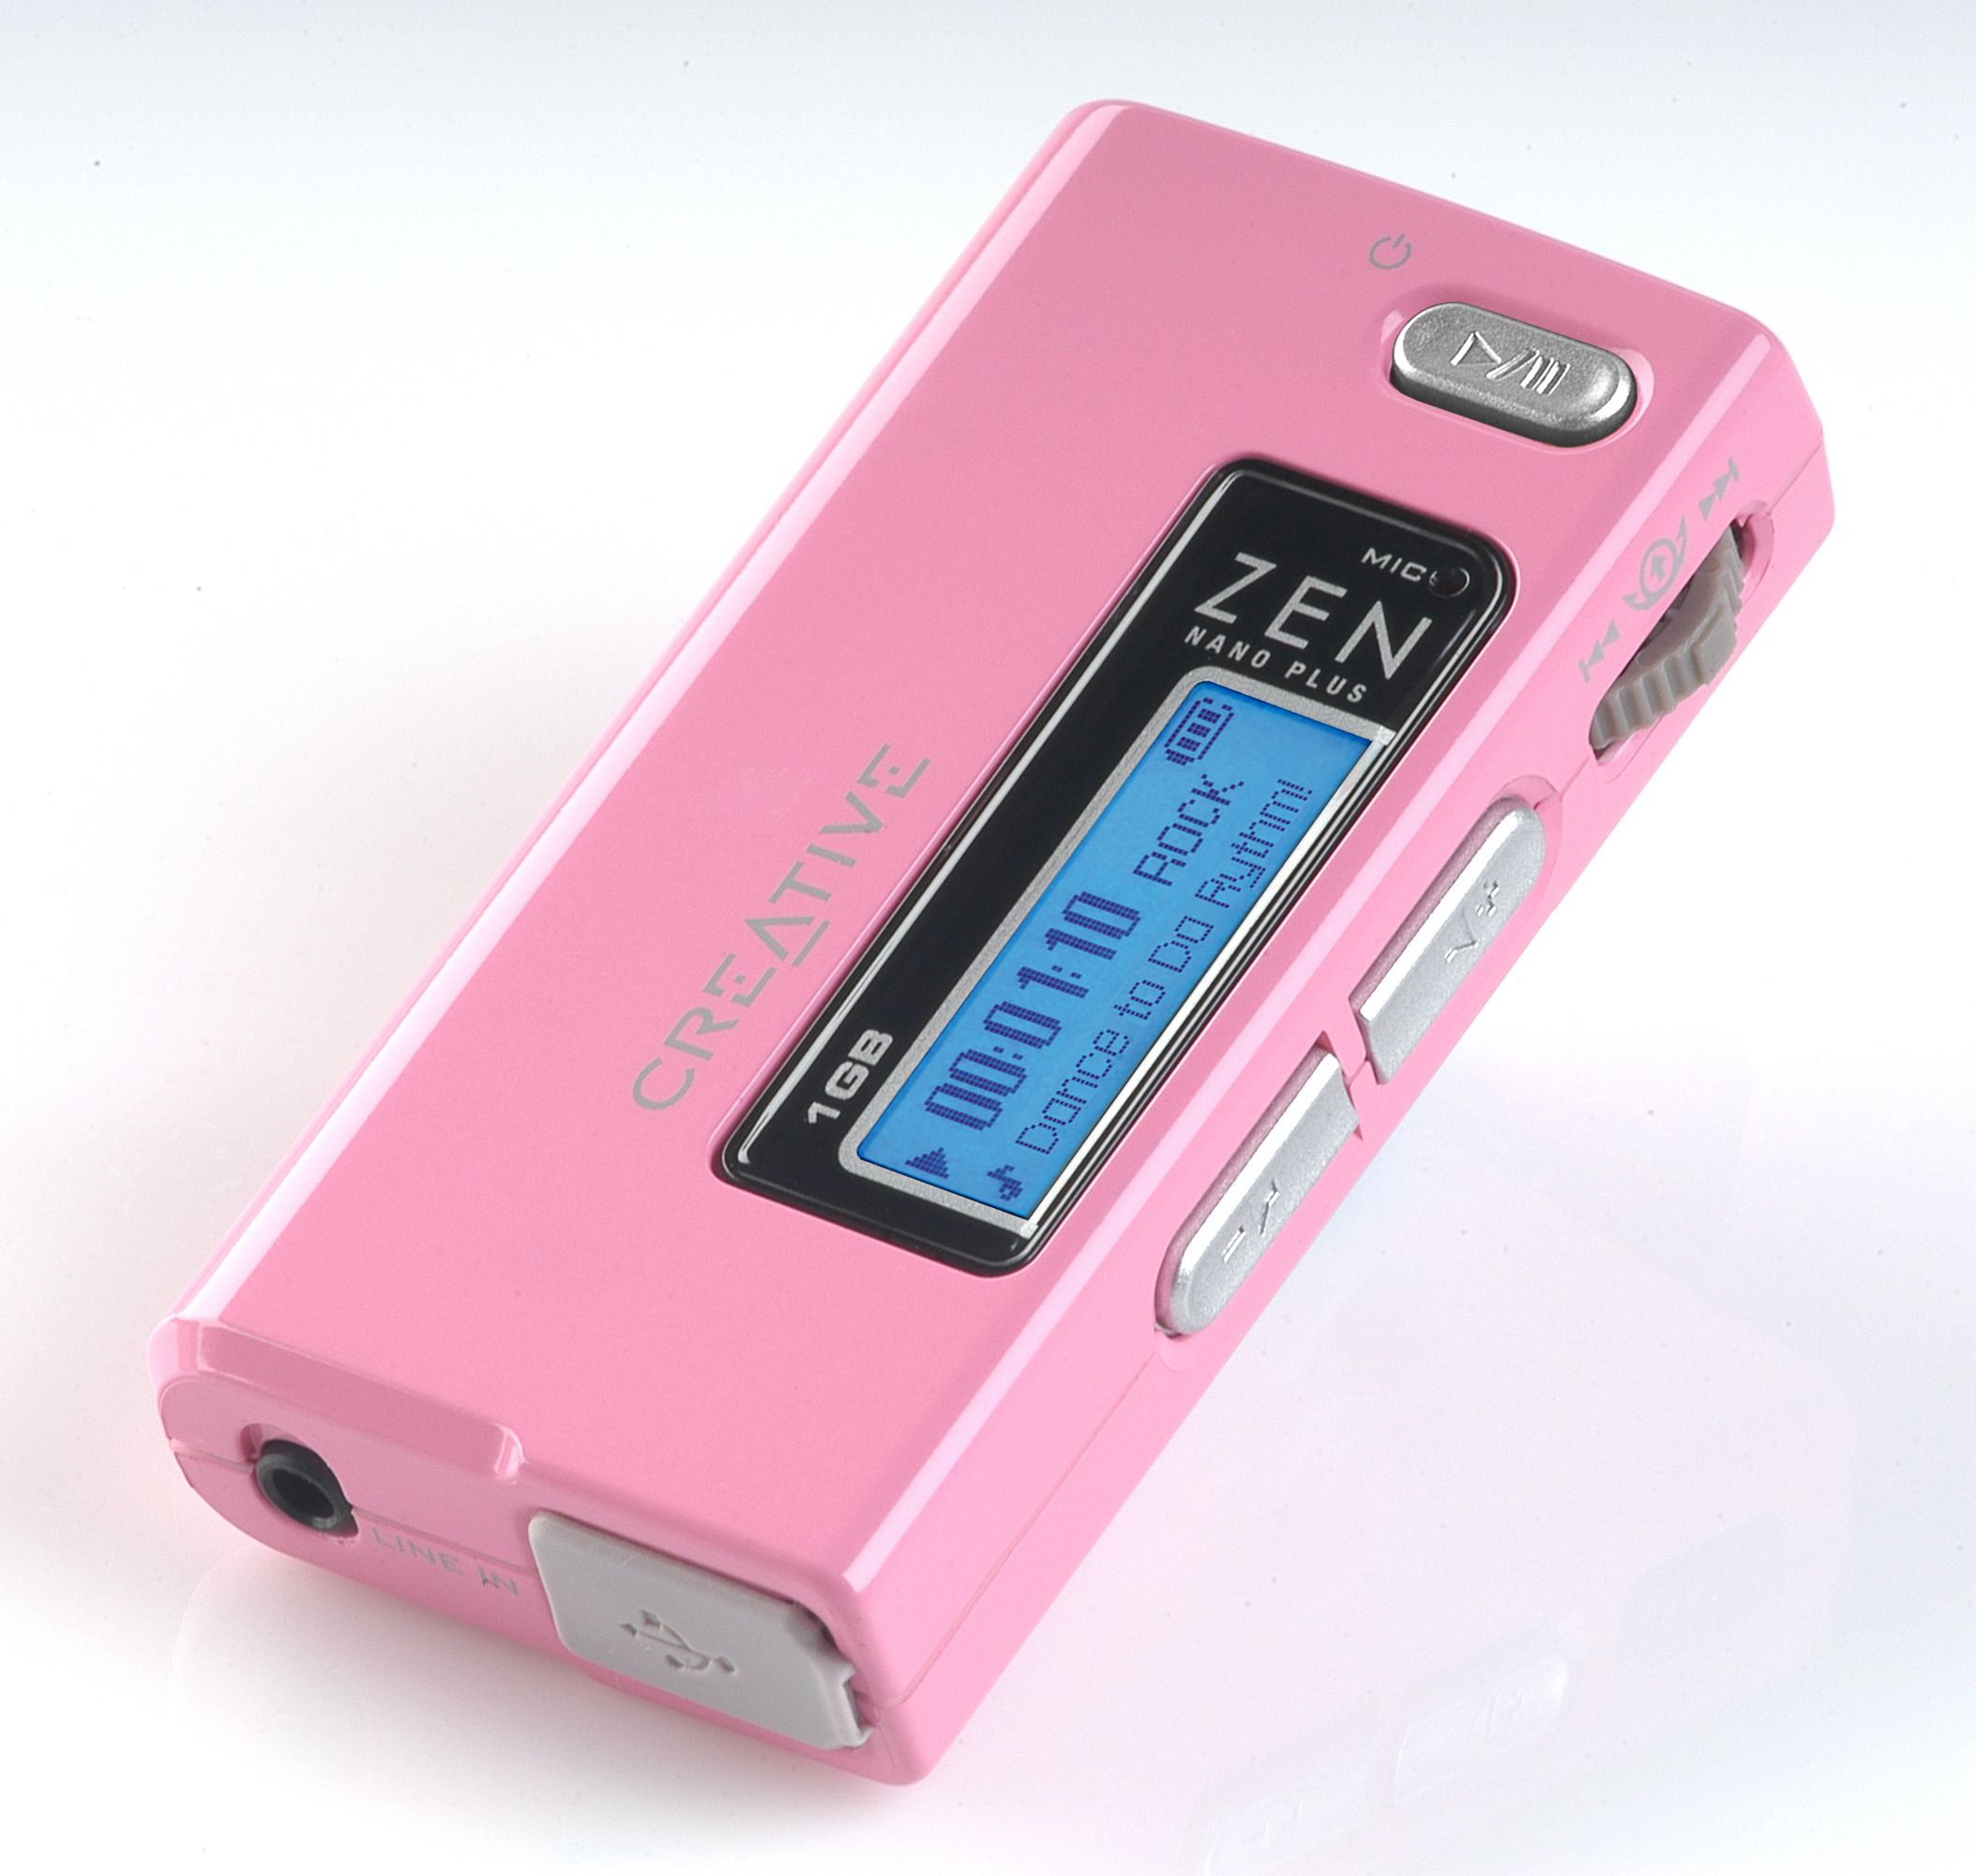 adfc3298558 Creative ZEN Nano Plus MP3 Player - Pink   Be in the Pink of health ...